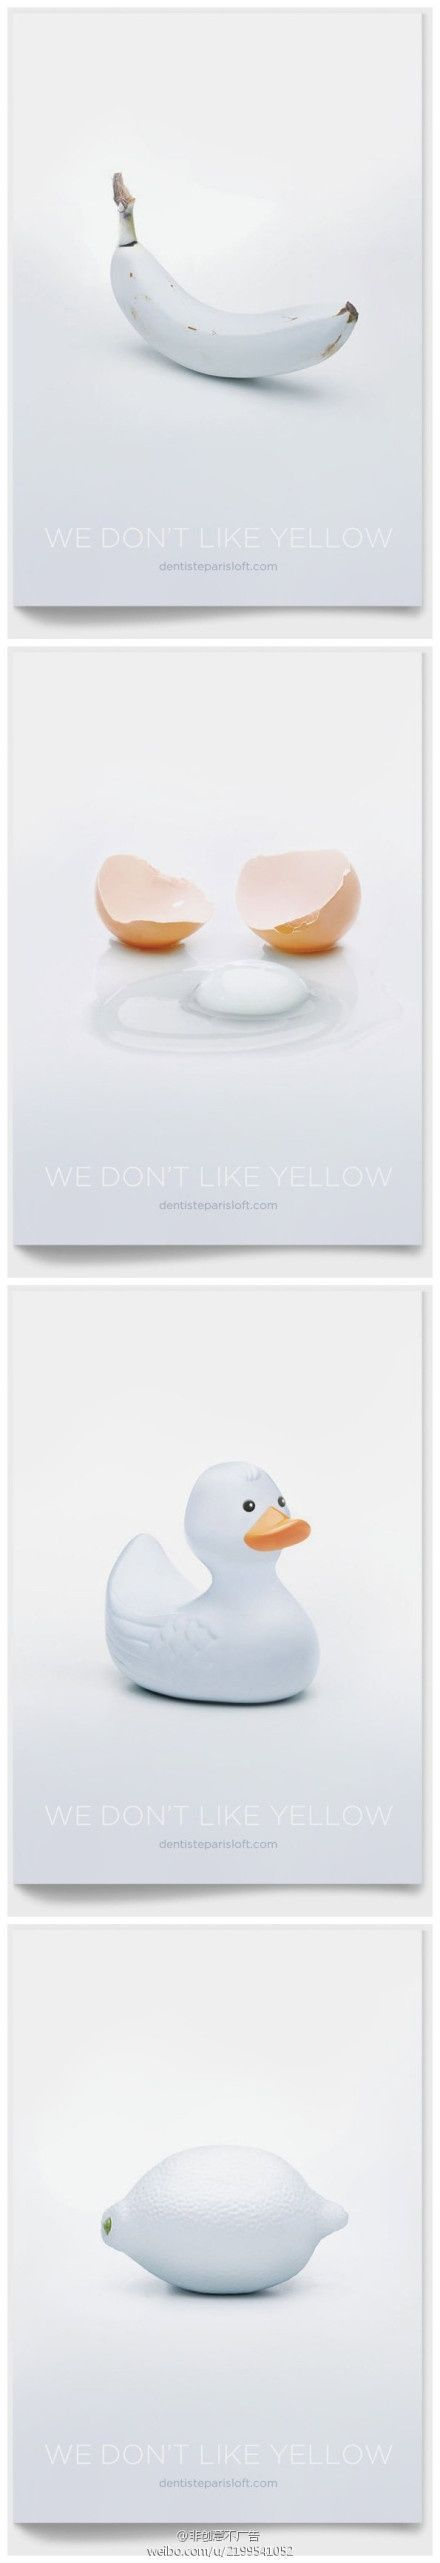 A dentist ads, We don't like yellow.